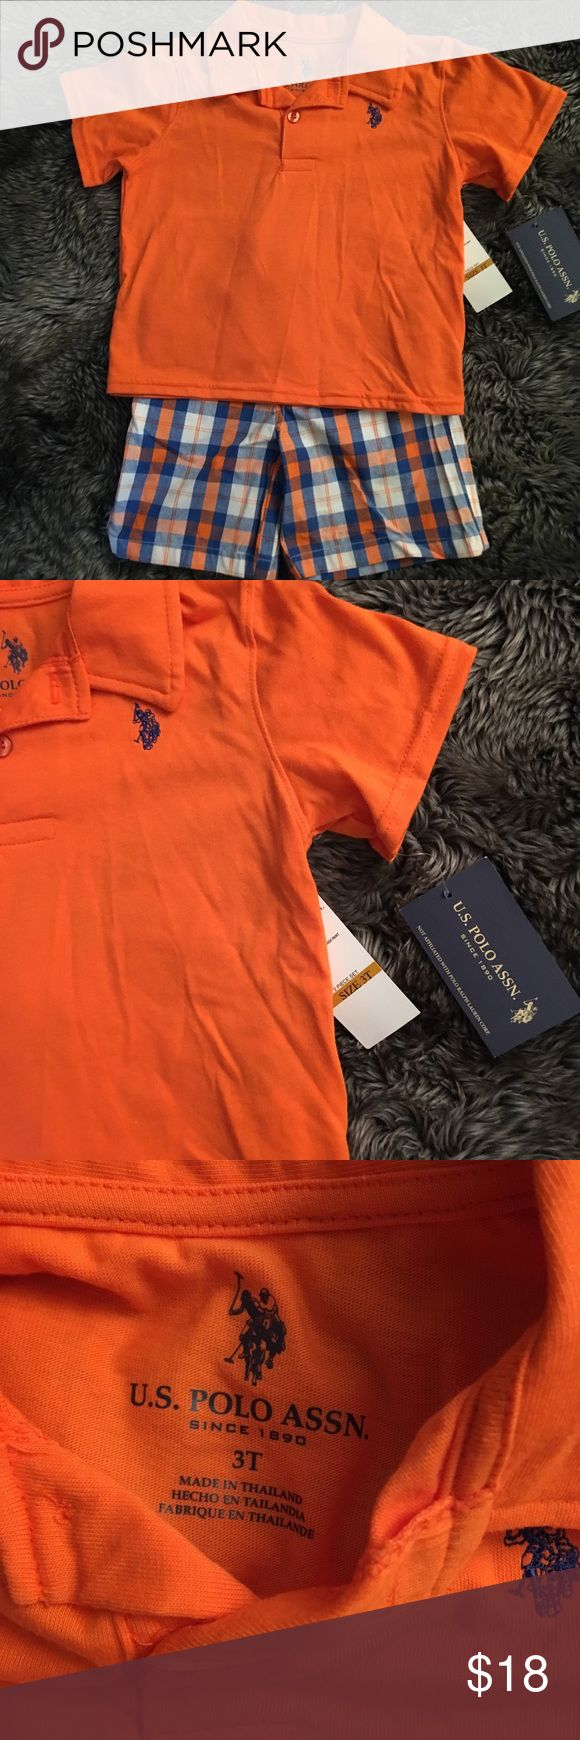 U.S. Polo association bouts two piece set 3T U.S. Polo association boys two piece set size 3T. Top polo style shirt, Orange in color. Bottoms plaid with elastic waist. U.S. Polo Assn. Matching Sets